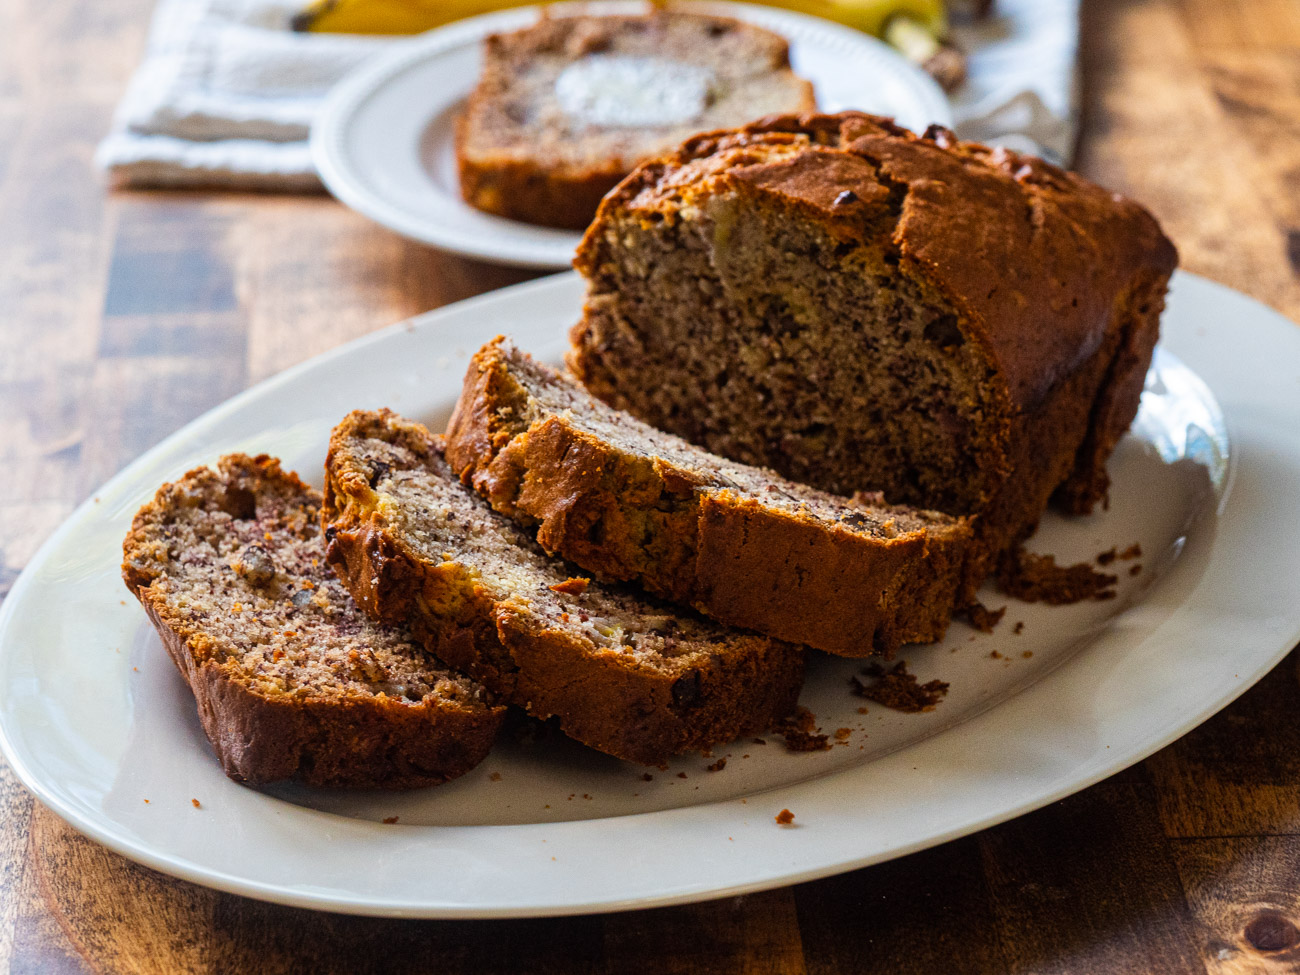 Amy Grant's Banana Bread